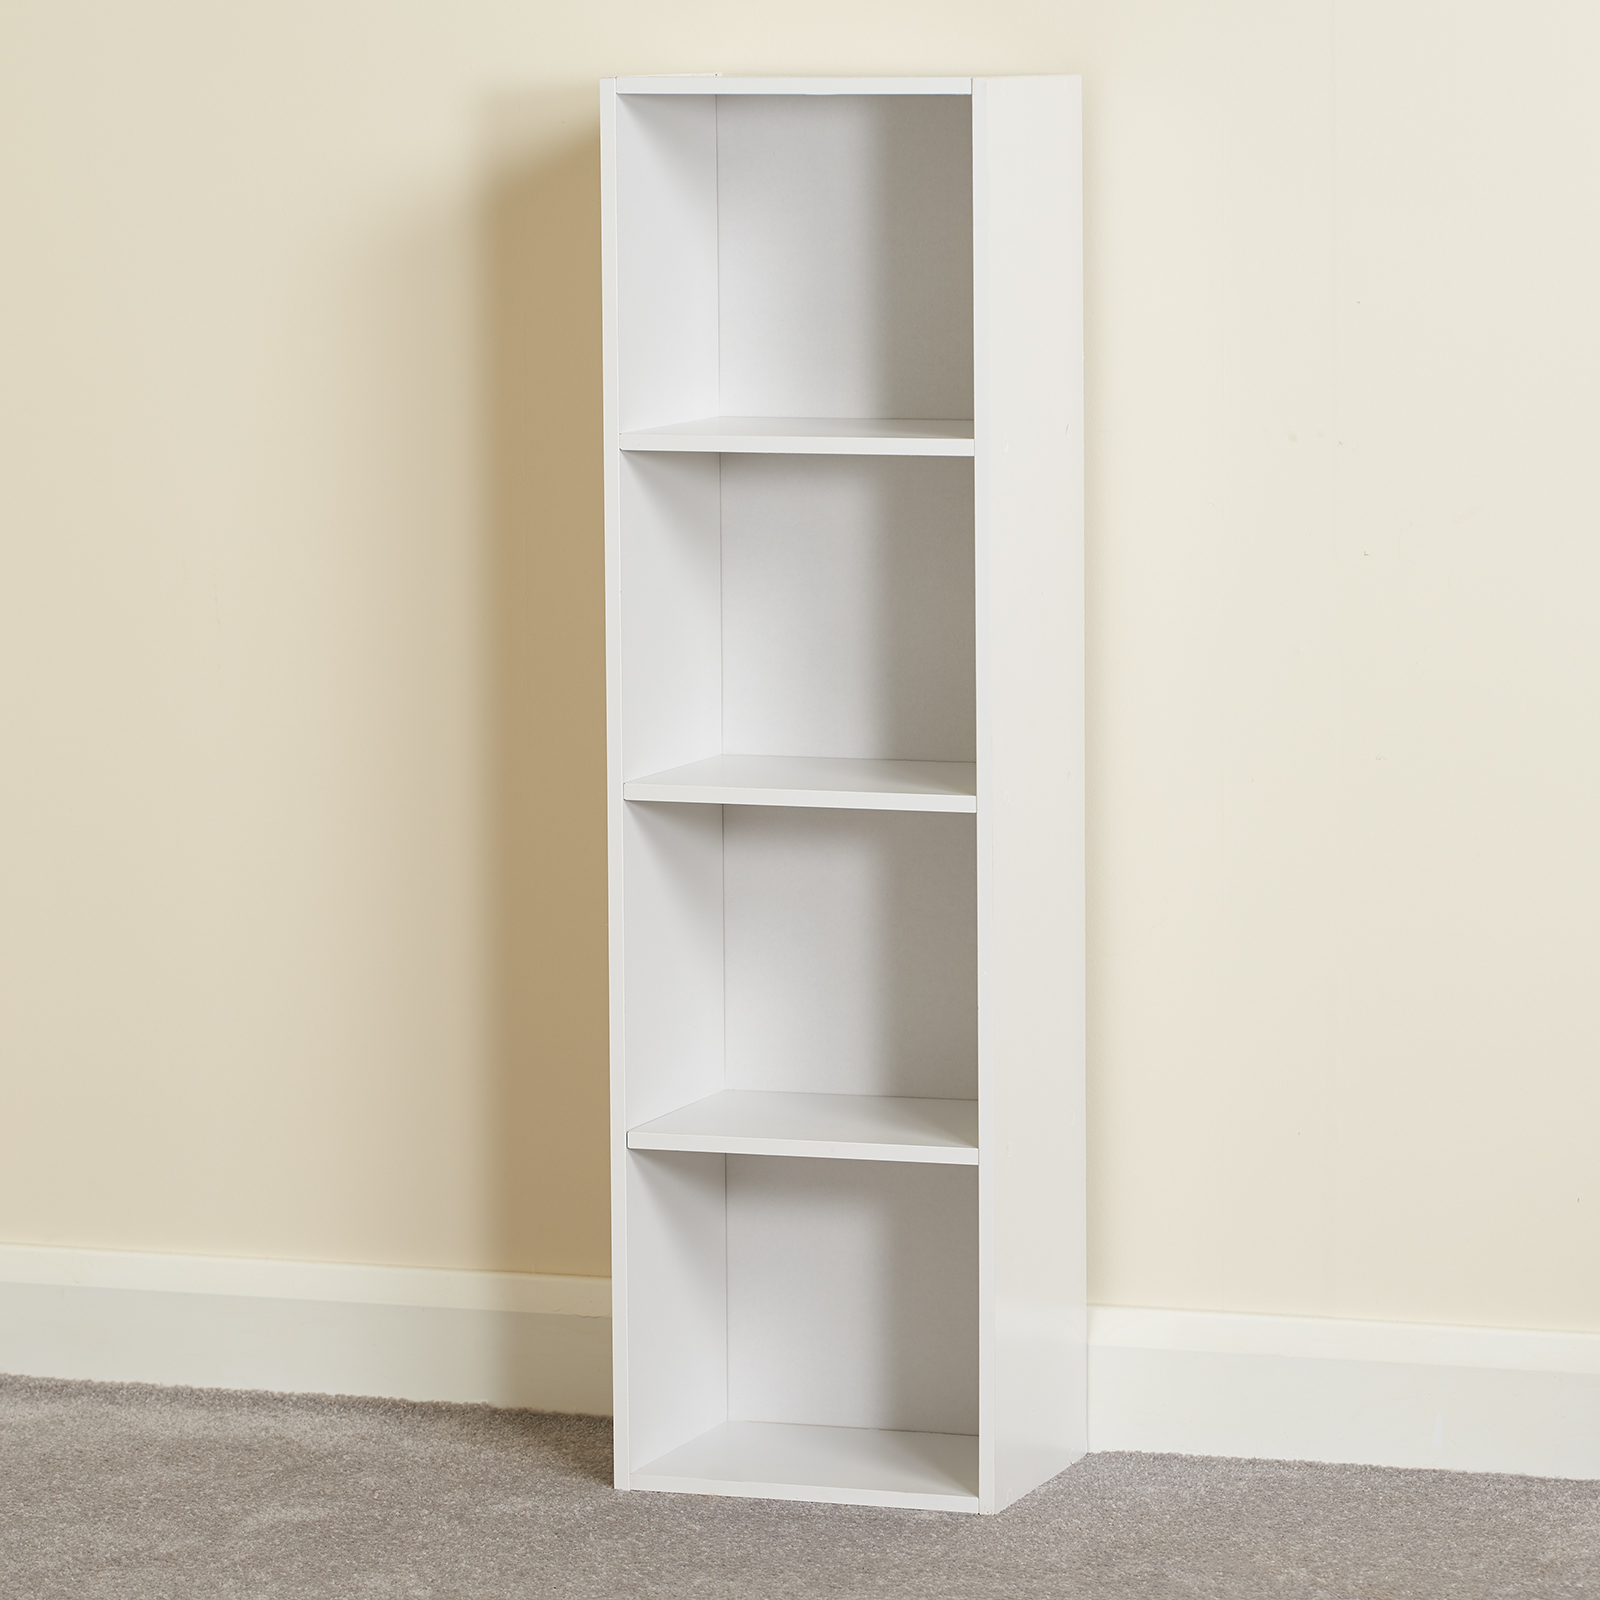 Hartleys-4-Tier-White-Bookcase-Wooden-Display-Shelving-Unit-amp-Fabric-Storage-Box thumbnail 7